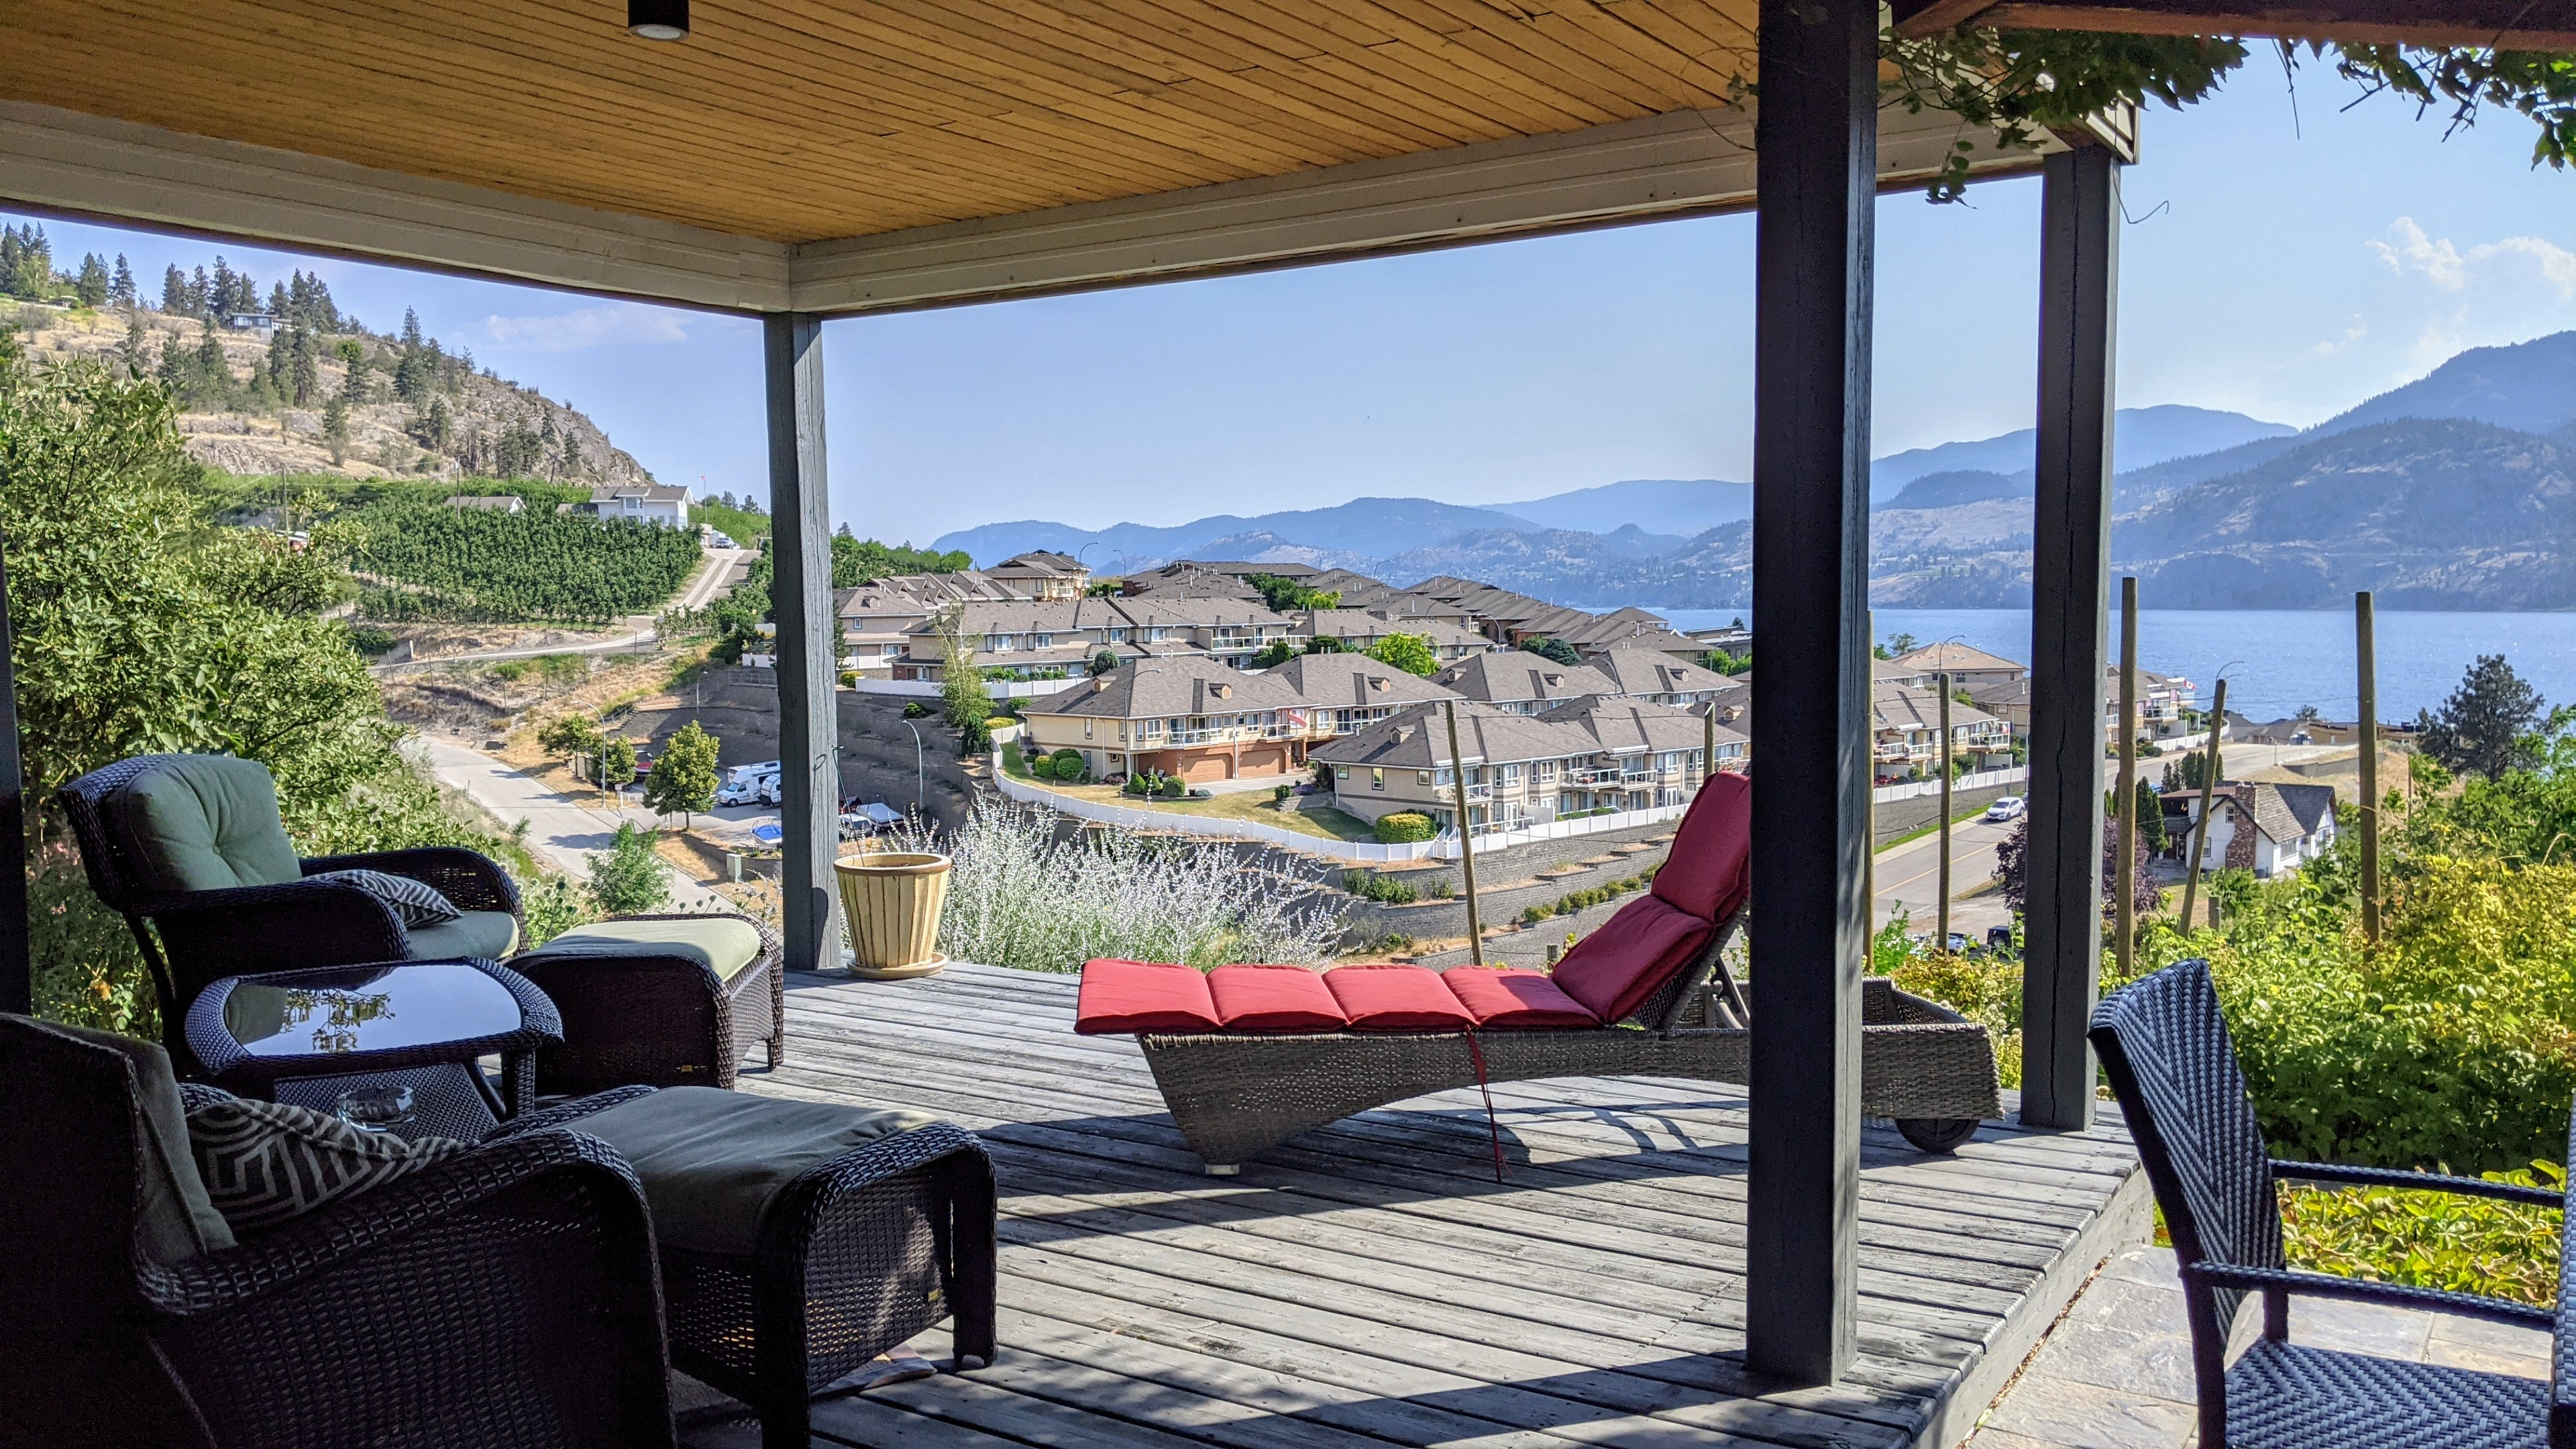 Penticton Lakeview Lookout Airbnb Outdoor Deck